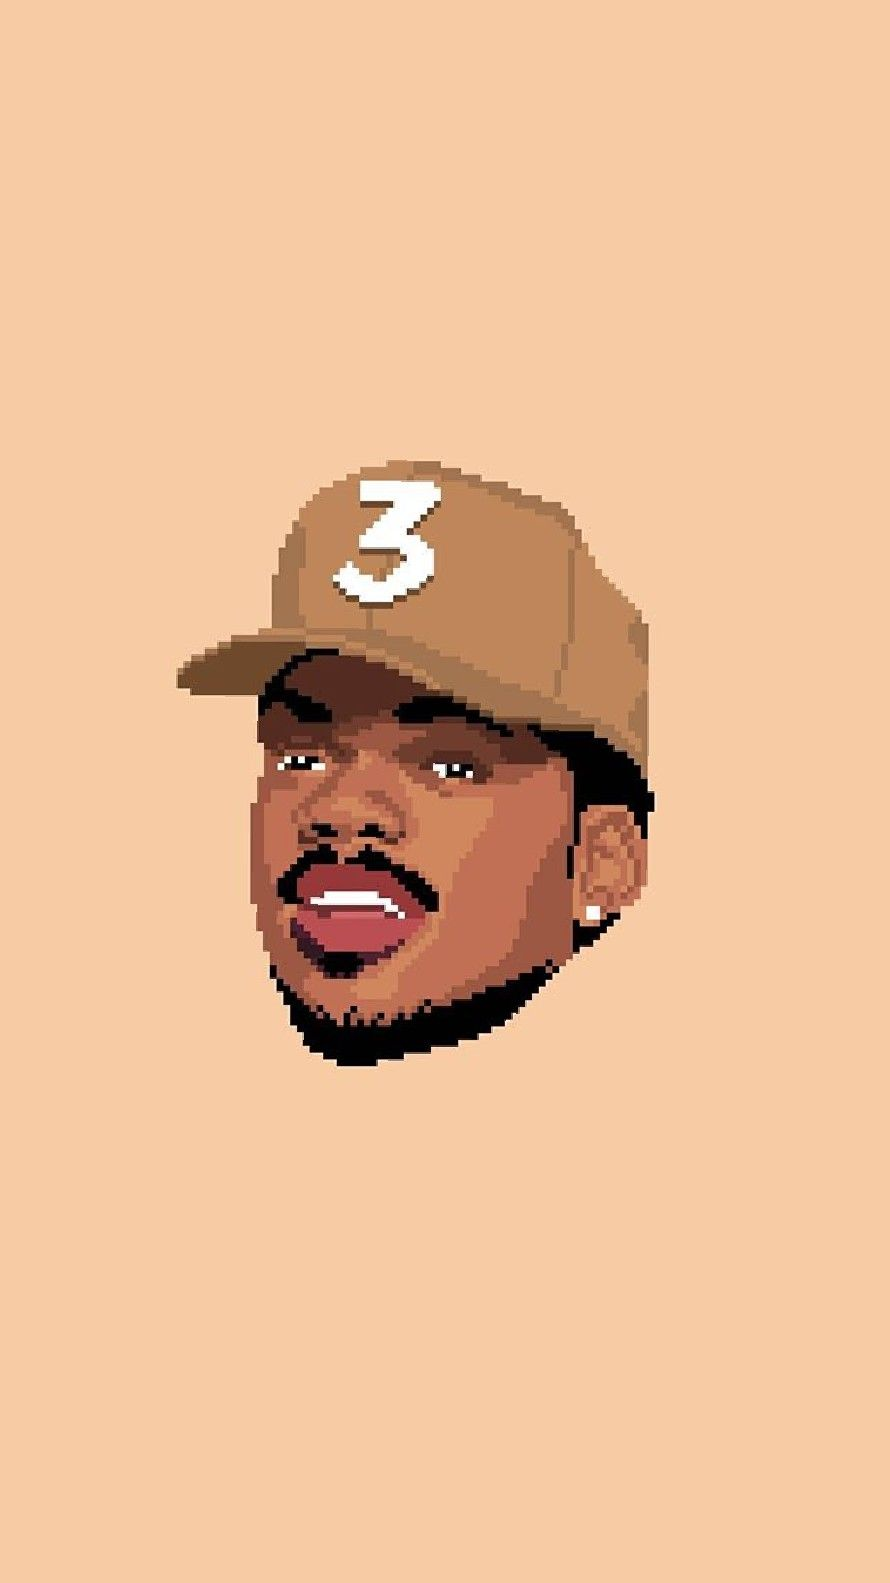 Chance The Rapper Iphone Wallpaper (Design by 8bit Hip